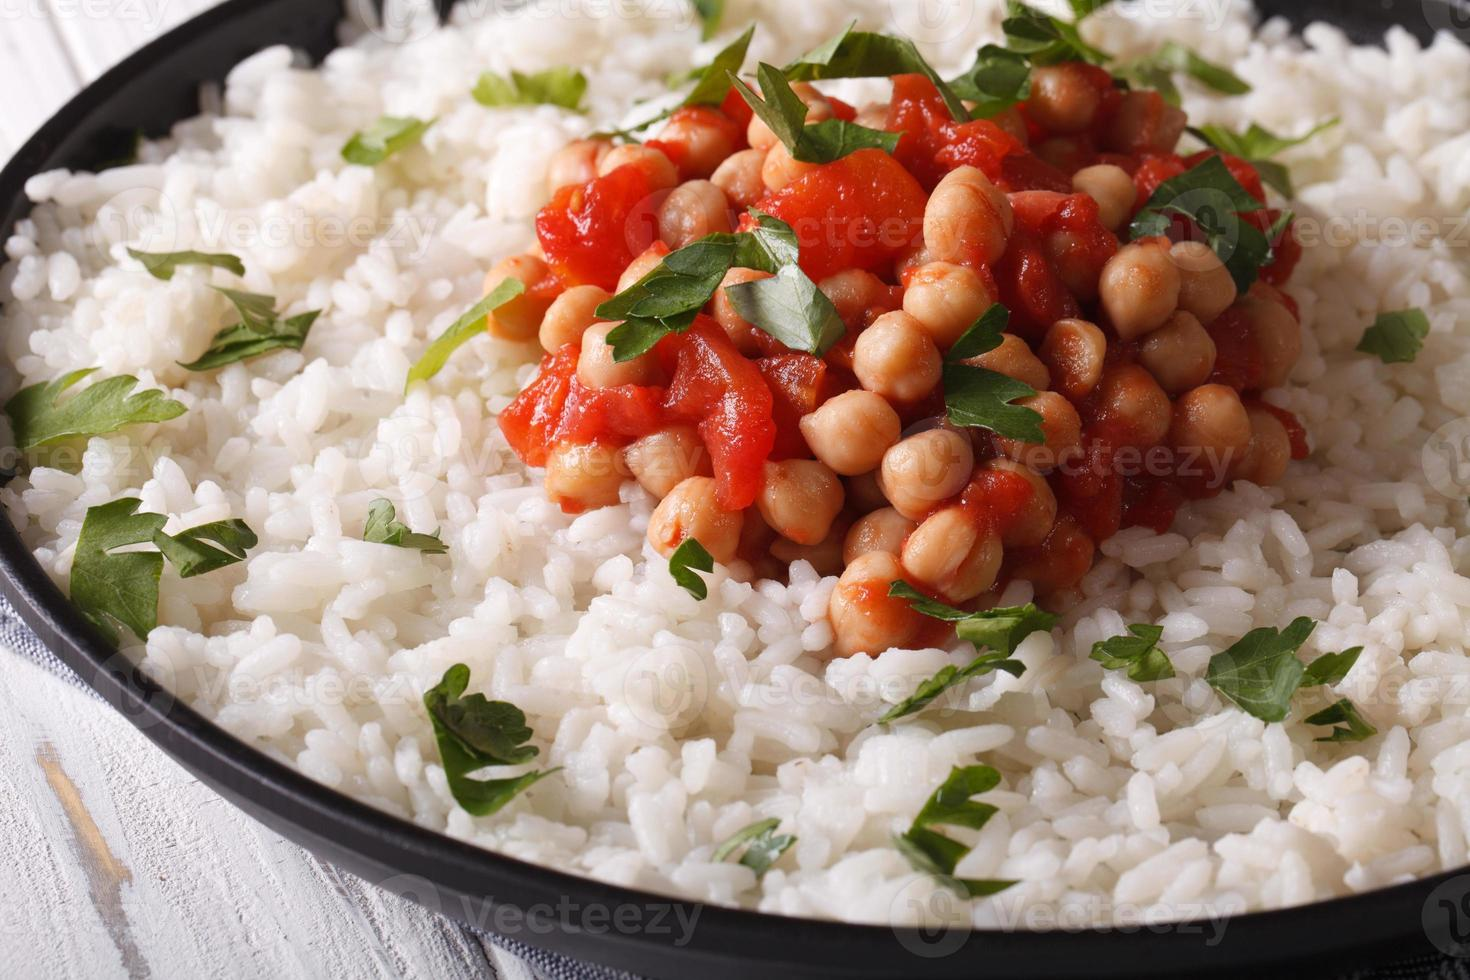 Rice with chickpeas, tomatoes and herbs close-up. Horizontal photo